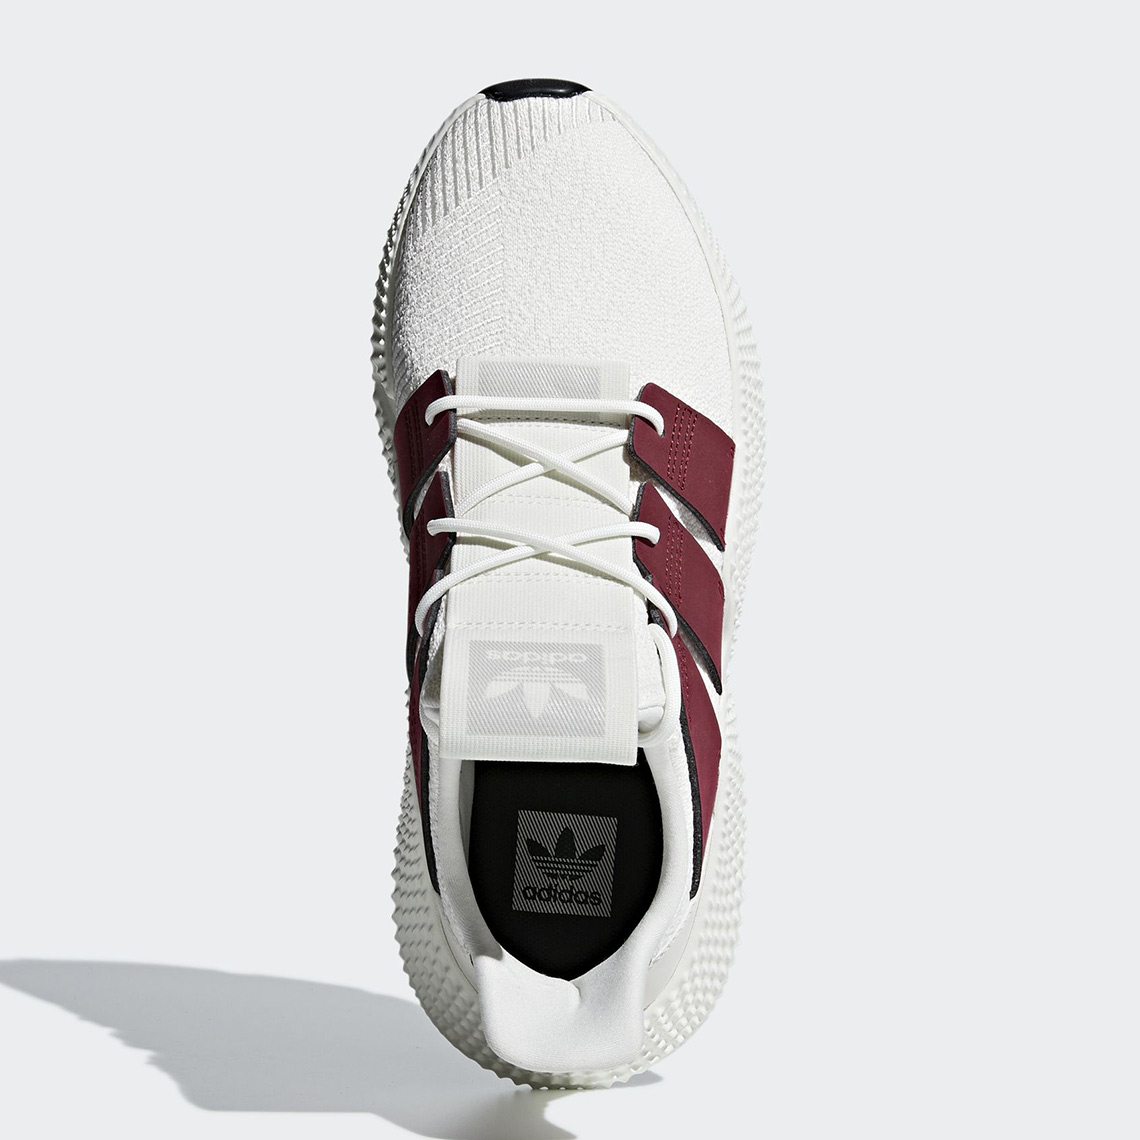 1018cbb85ee7 adidas Prophere D96658 Maroon Release Info